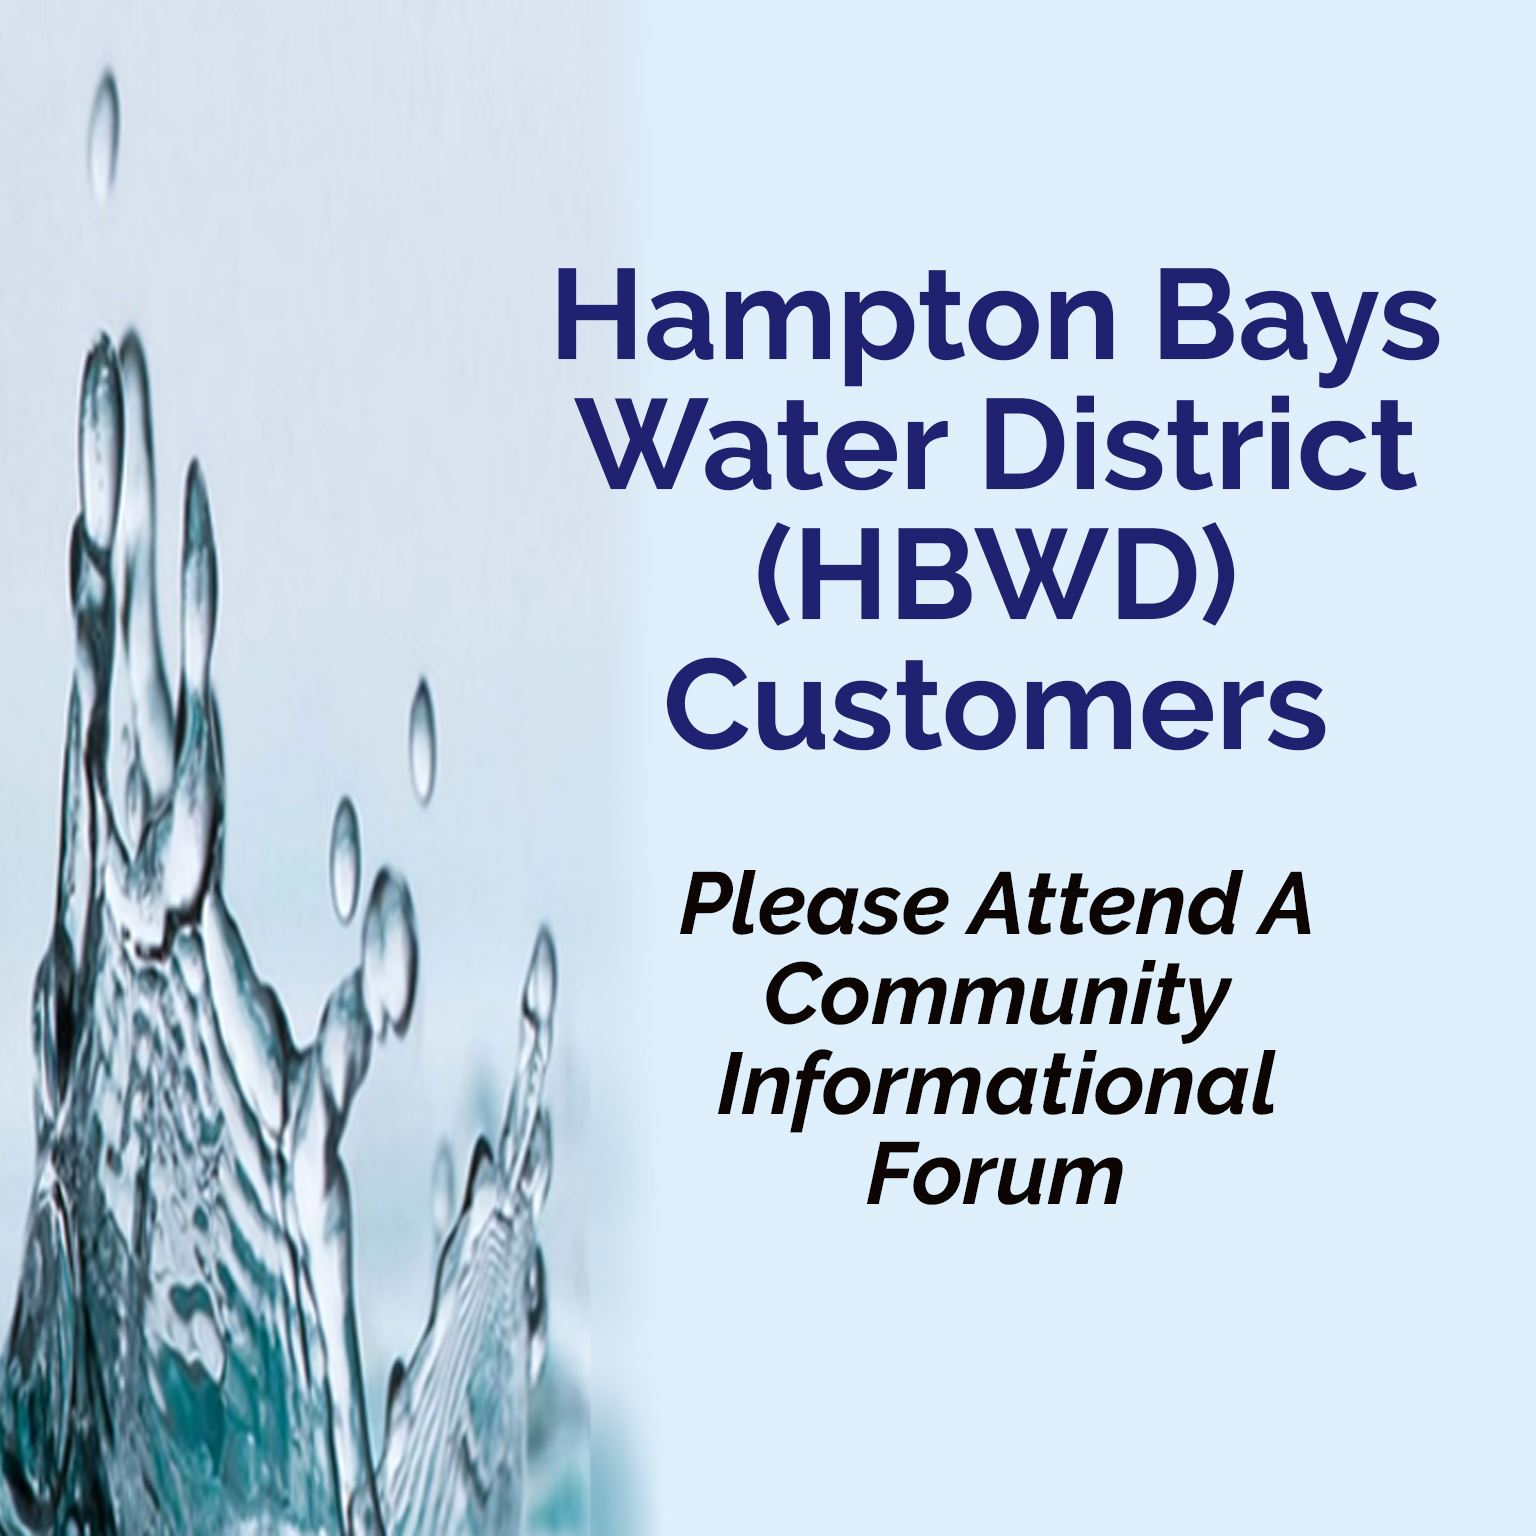 Hampton Bays Water District Community Info Forum